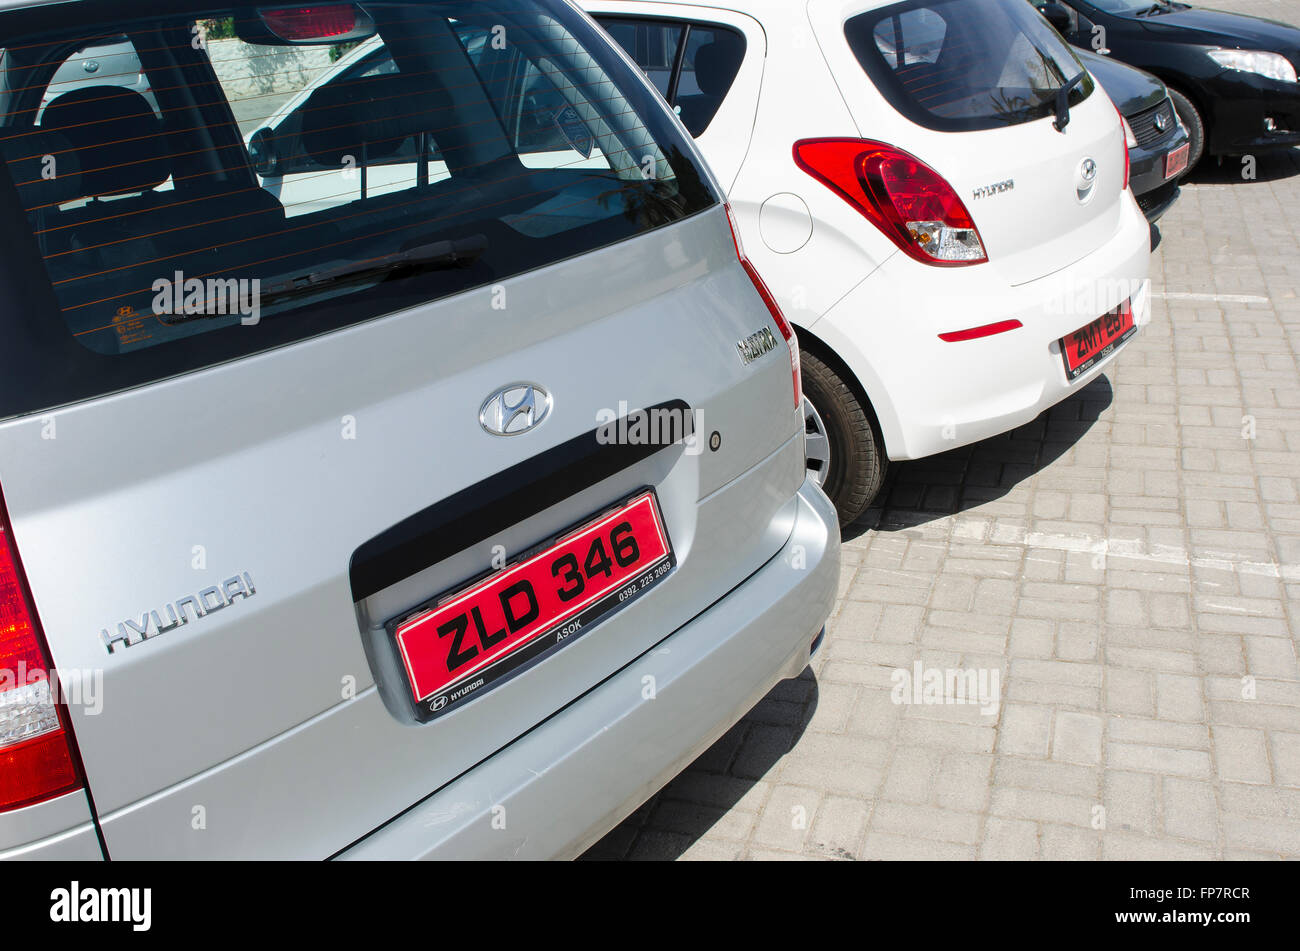 Red number plates on the back of cars parked in a car park in the ...